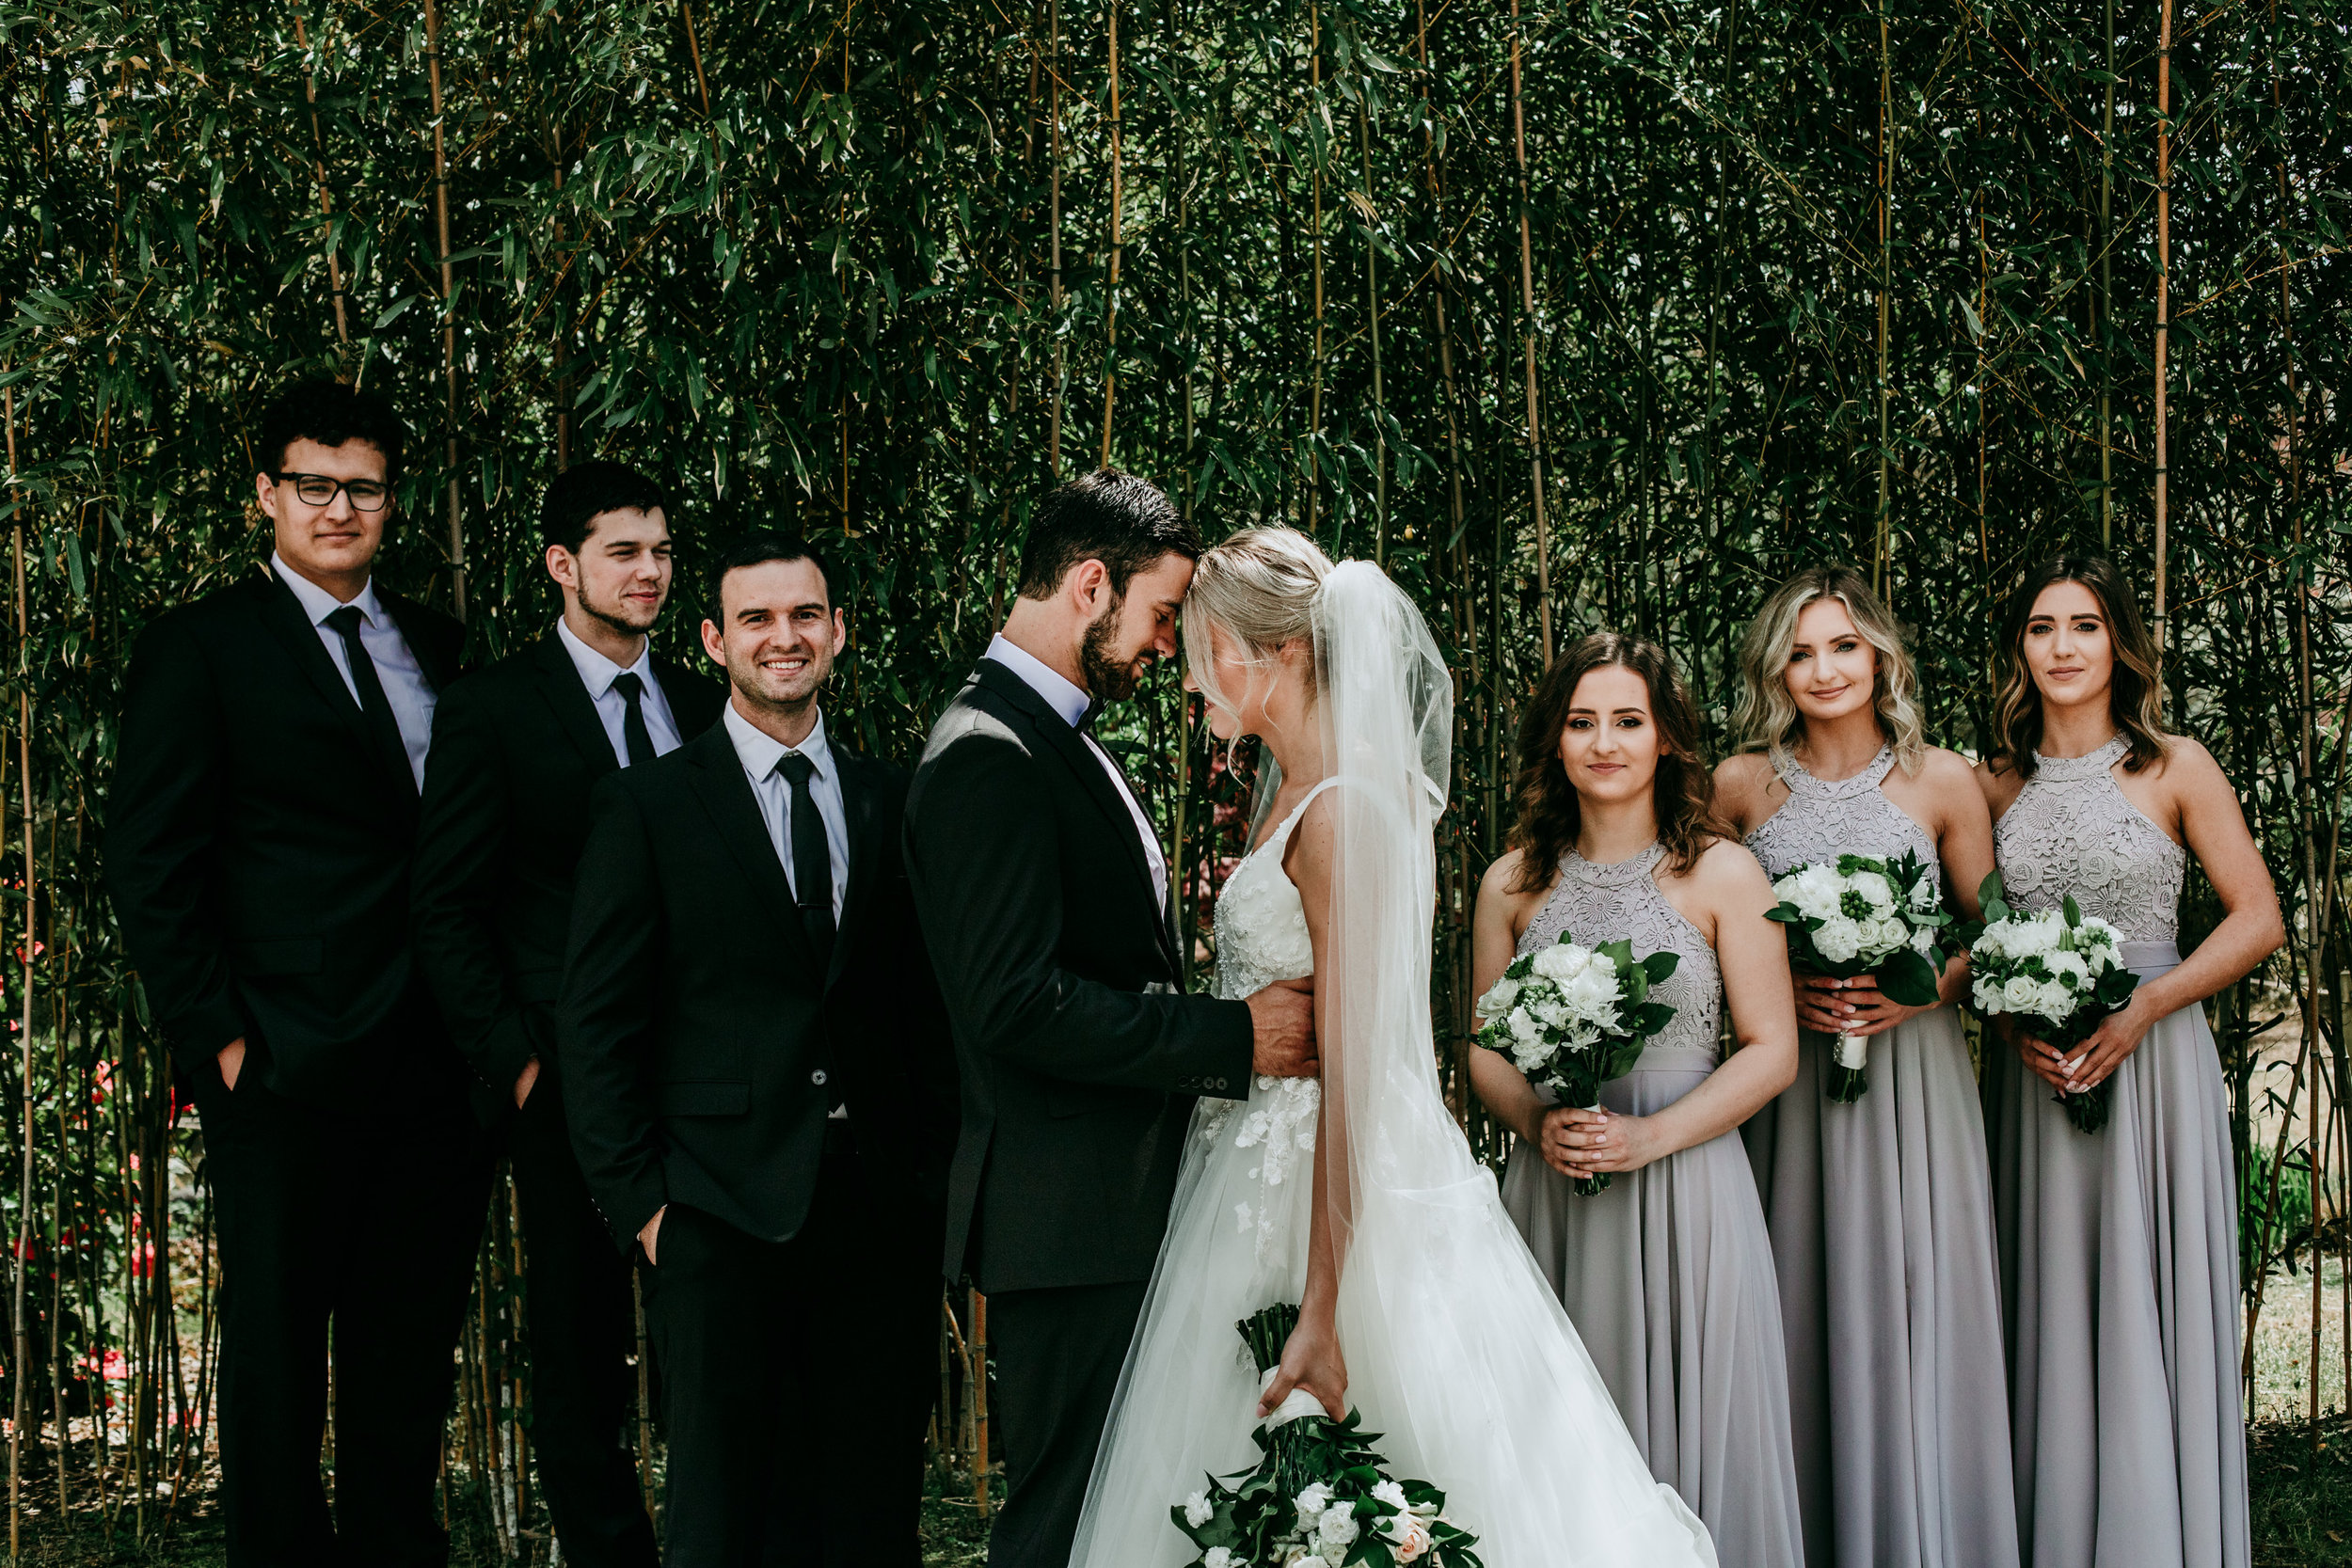 must-have-wedding-photos-for-bride-and-groom.jpg